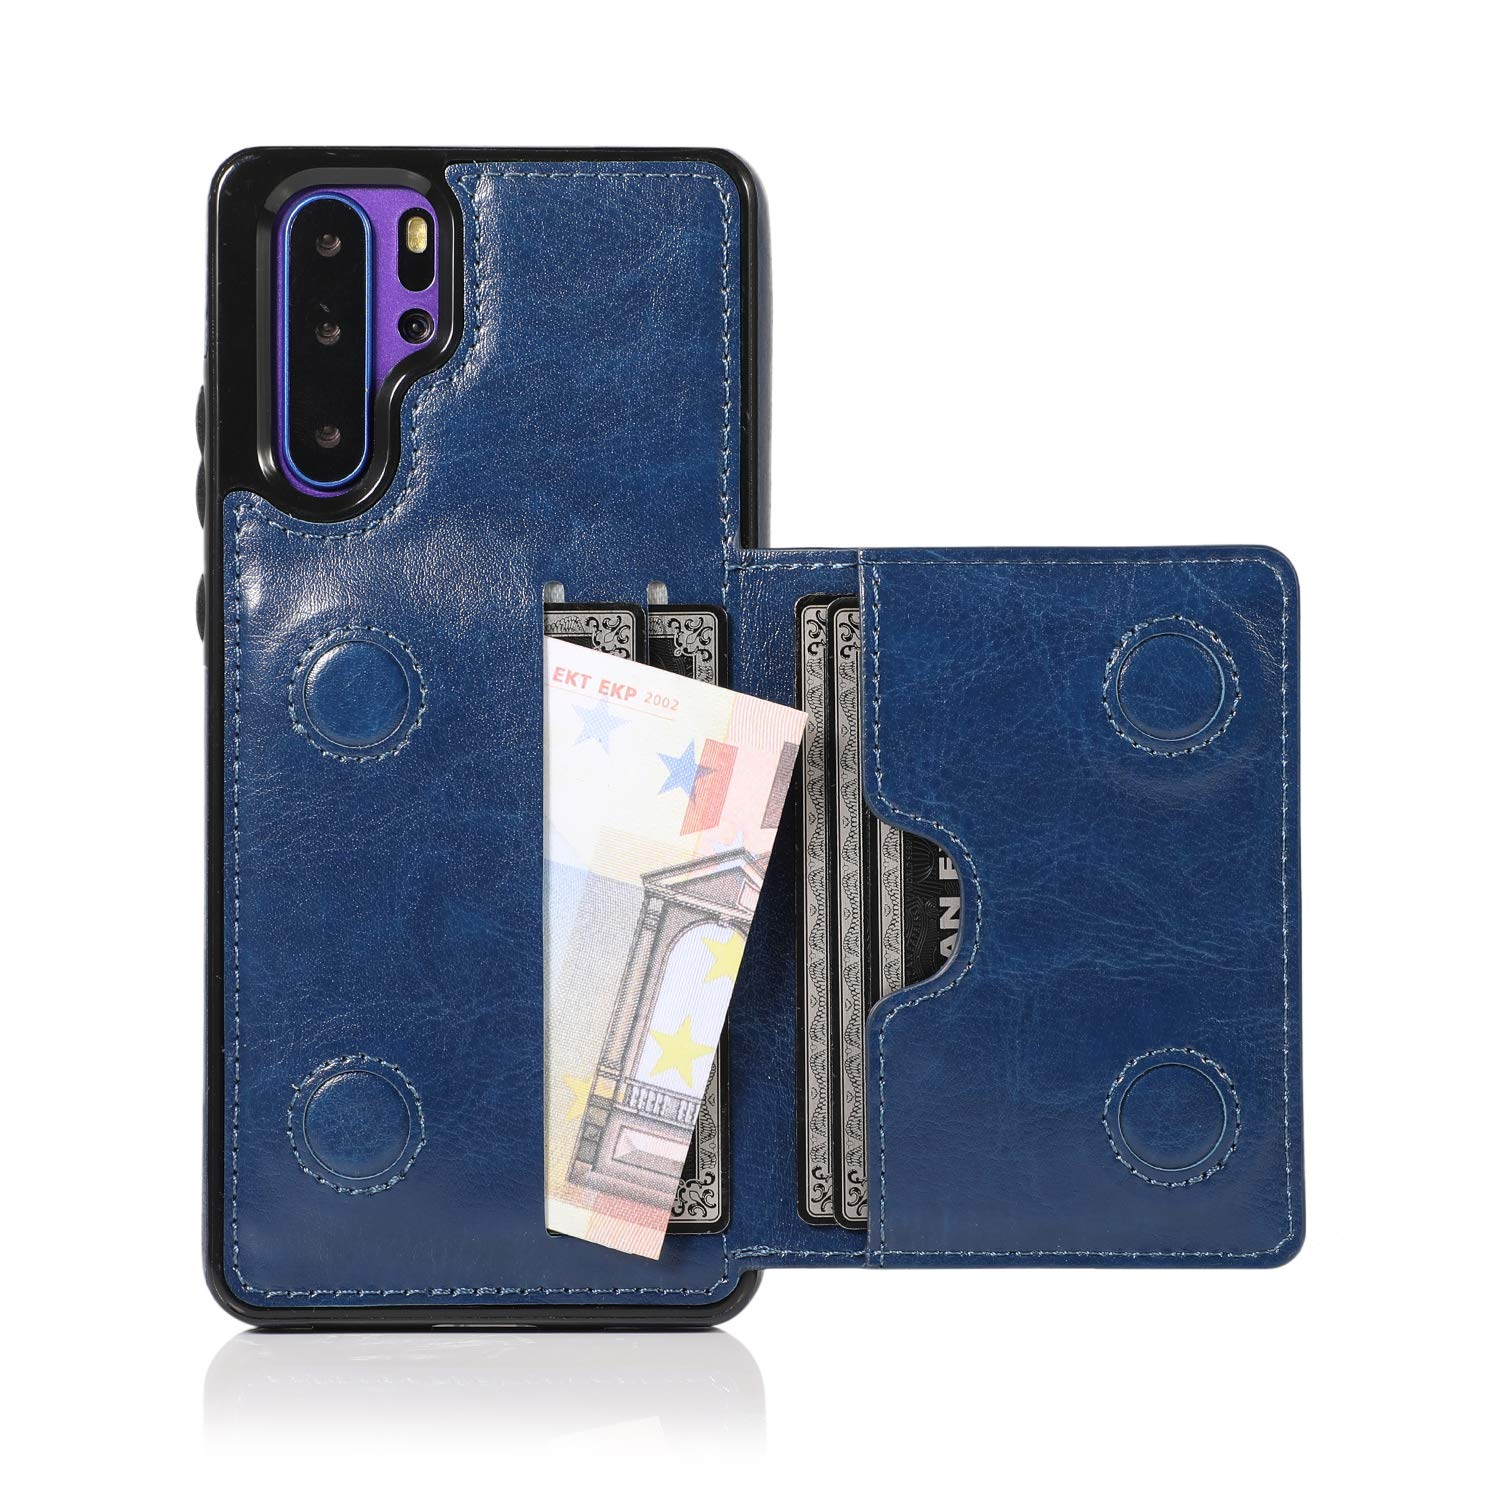 Huawei P30 Pro Case, Ranyi Slim Flip Wallet Case with Credit Card Holder Slots Premium PU Leather Magnetic Clasp Flip Folio Wallet Protective Case Cover for Huawei P30 Pro (2019), Blue by Ranyi